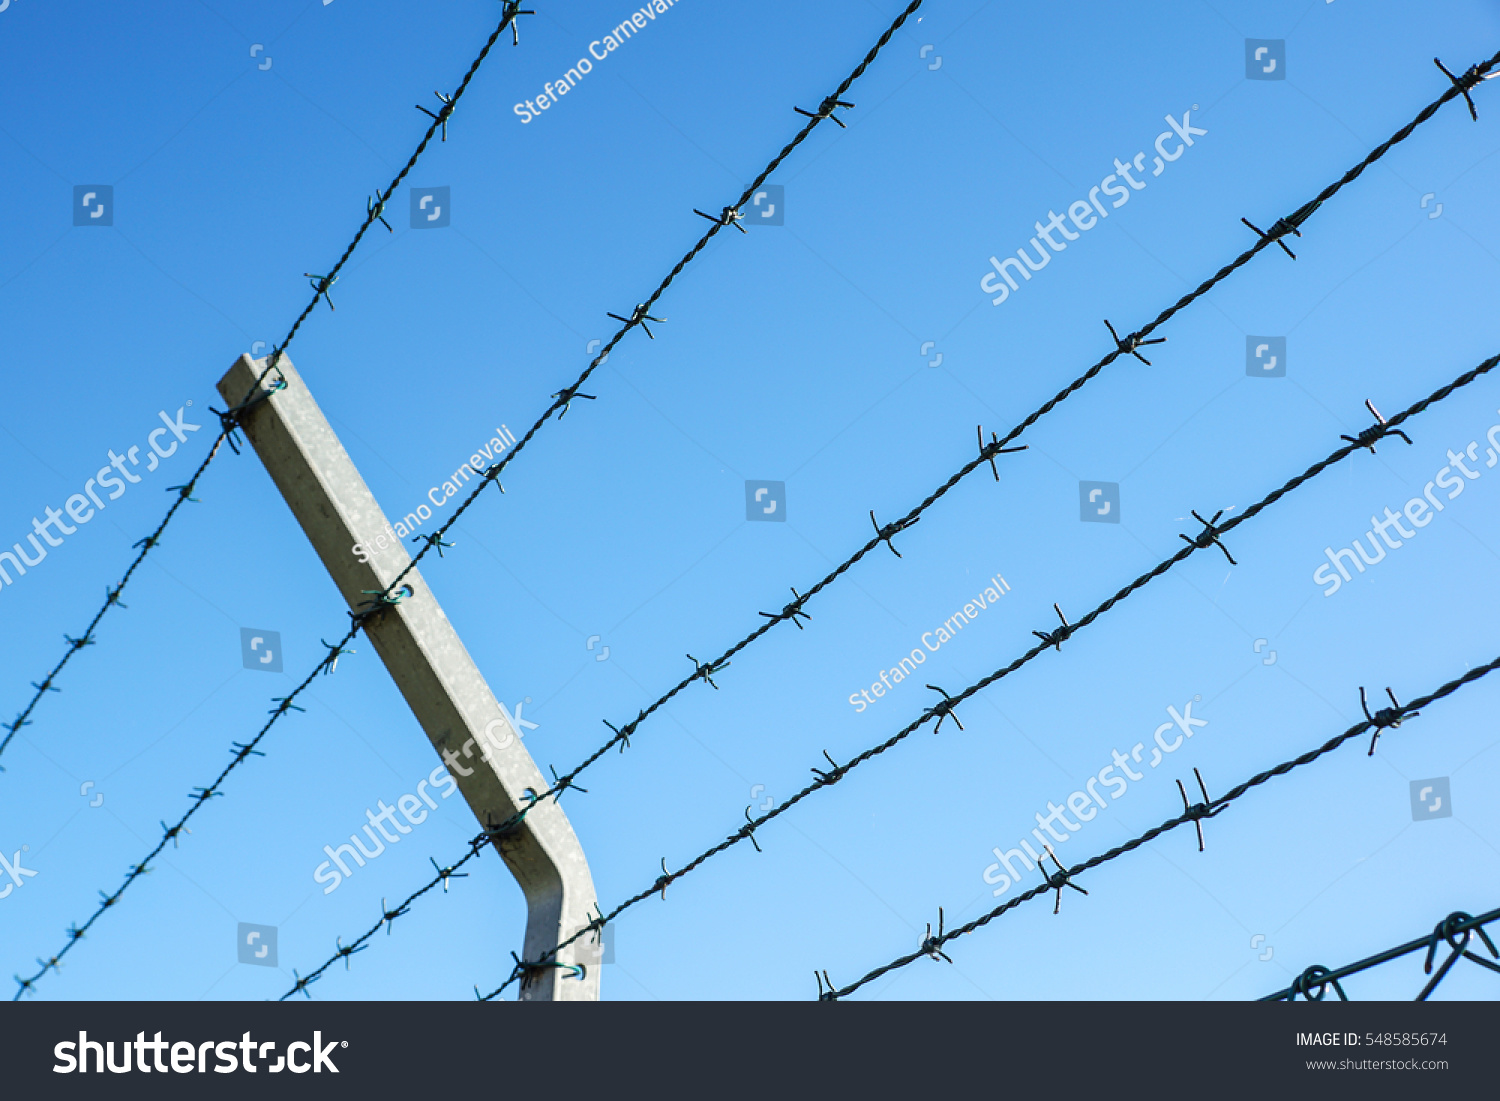 Coiled Razor Wire Sharp Steel Barbs Stock Photo (Royalty Free ...